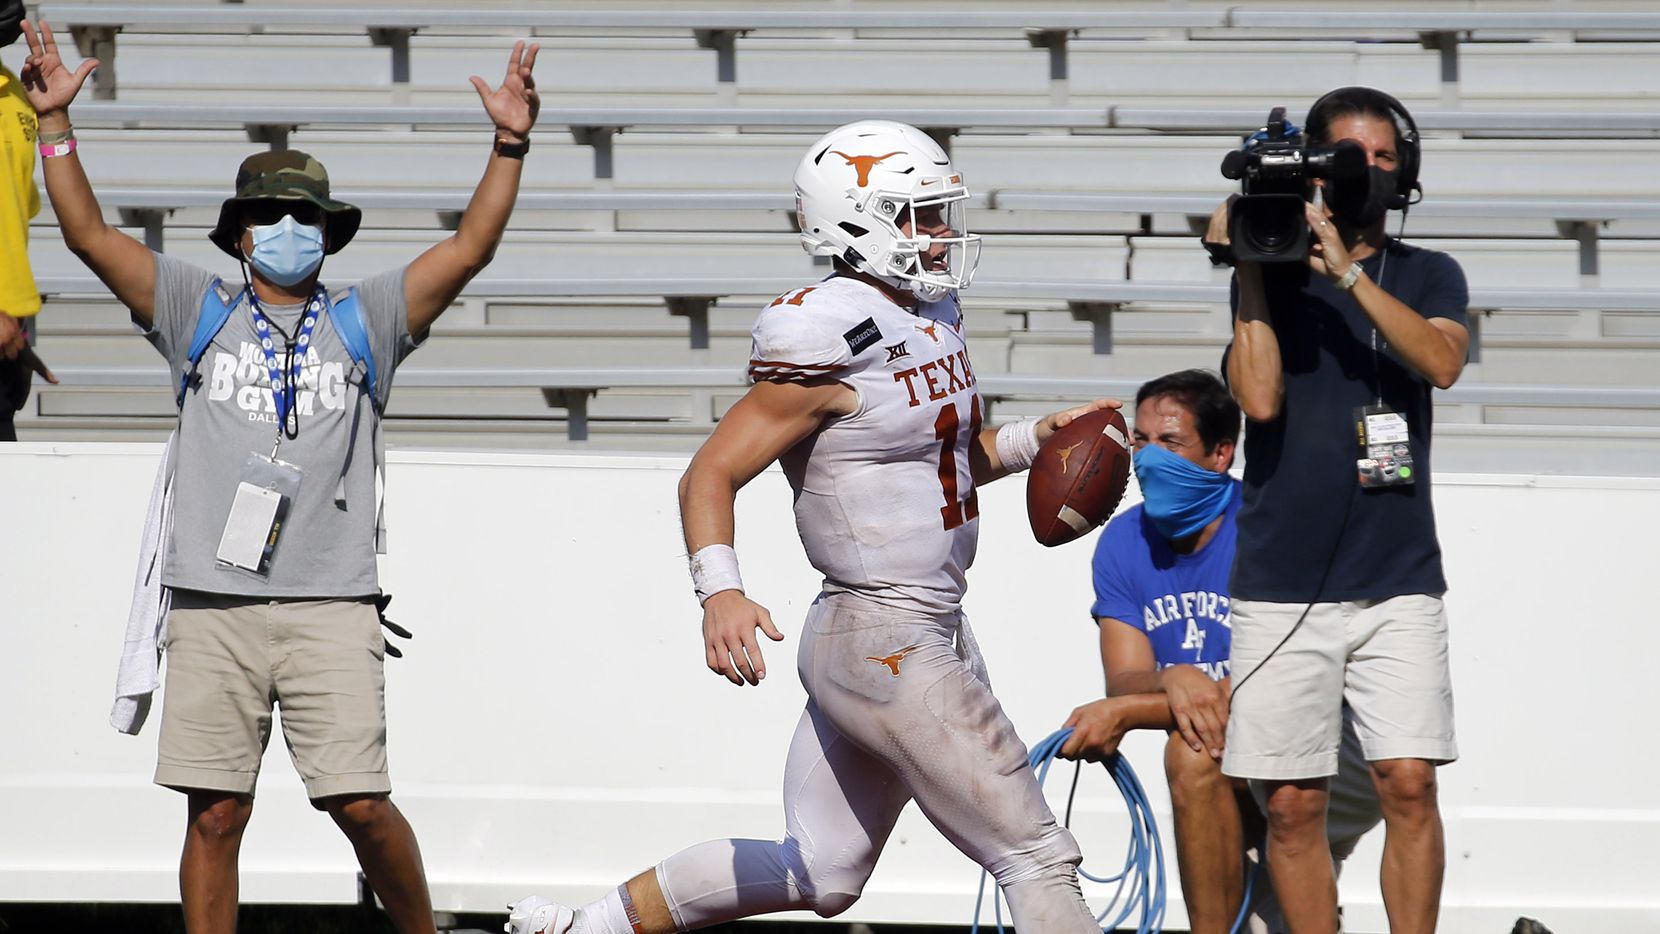 Texas Longhorns quarterback Sam Ehlinger (11) runs in a touchdown during the second overtime against the Oklahoma Sooners in the Red River Rivalry at the Cotton Bowl in Dallas, Saturday, October 10, 2020. Oklahoma won in quadruple overtime, 53-45.